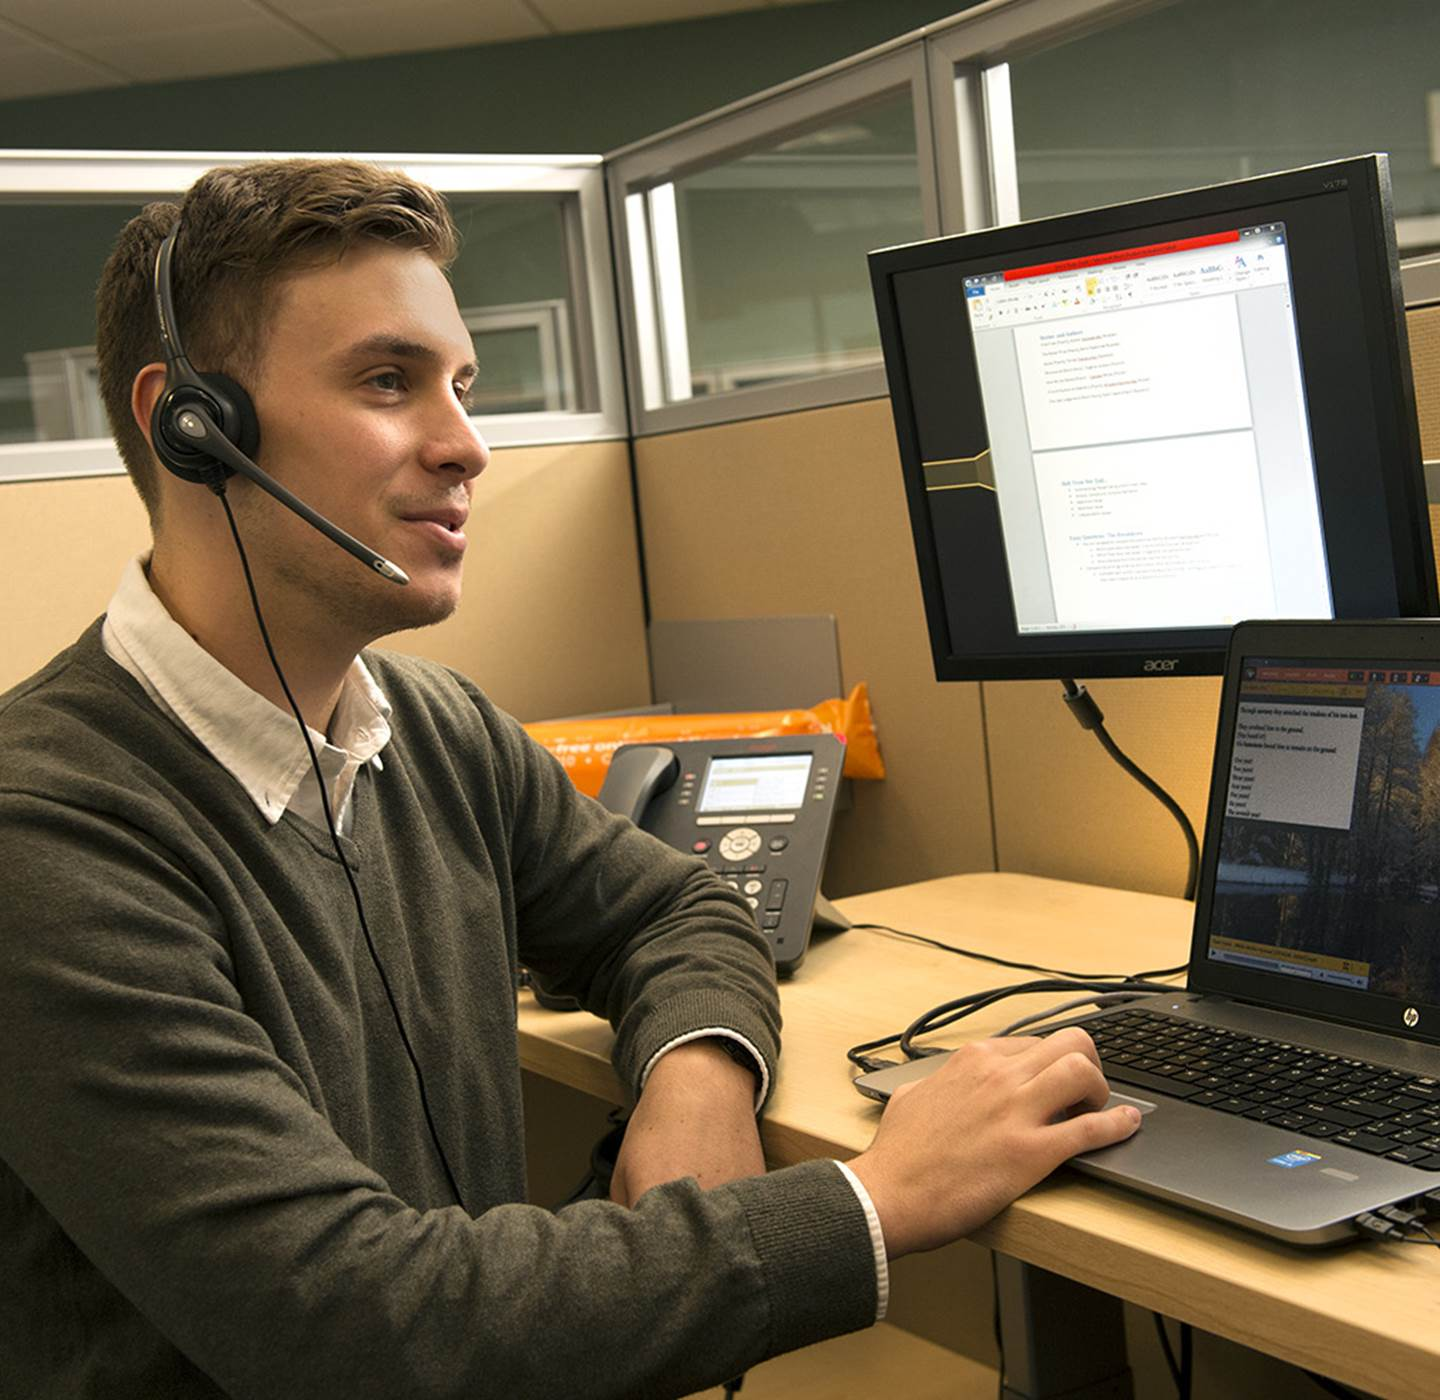 A man talking on his headset in front of the computer.